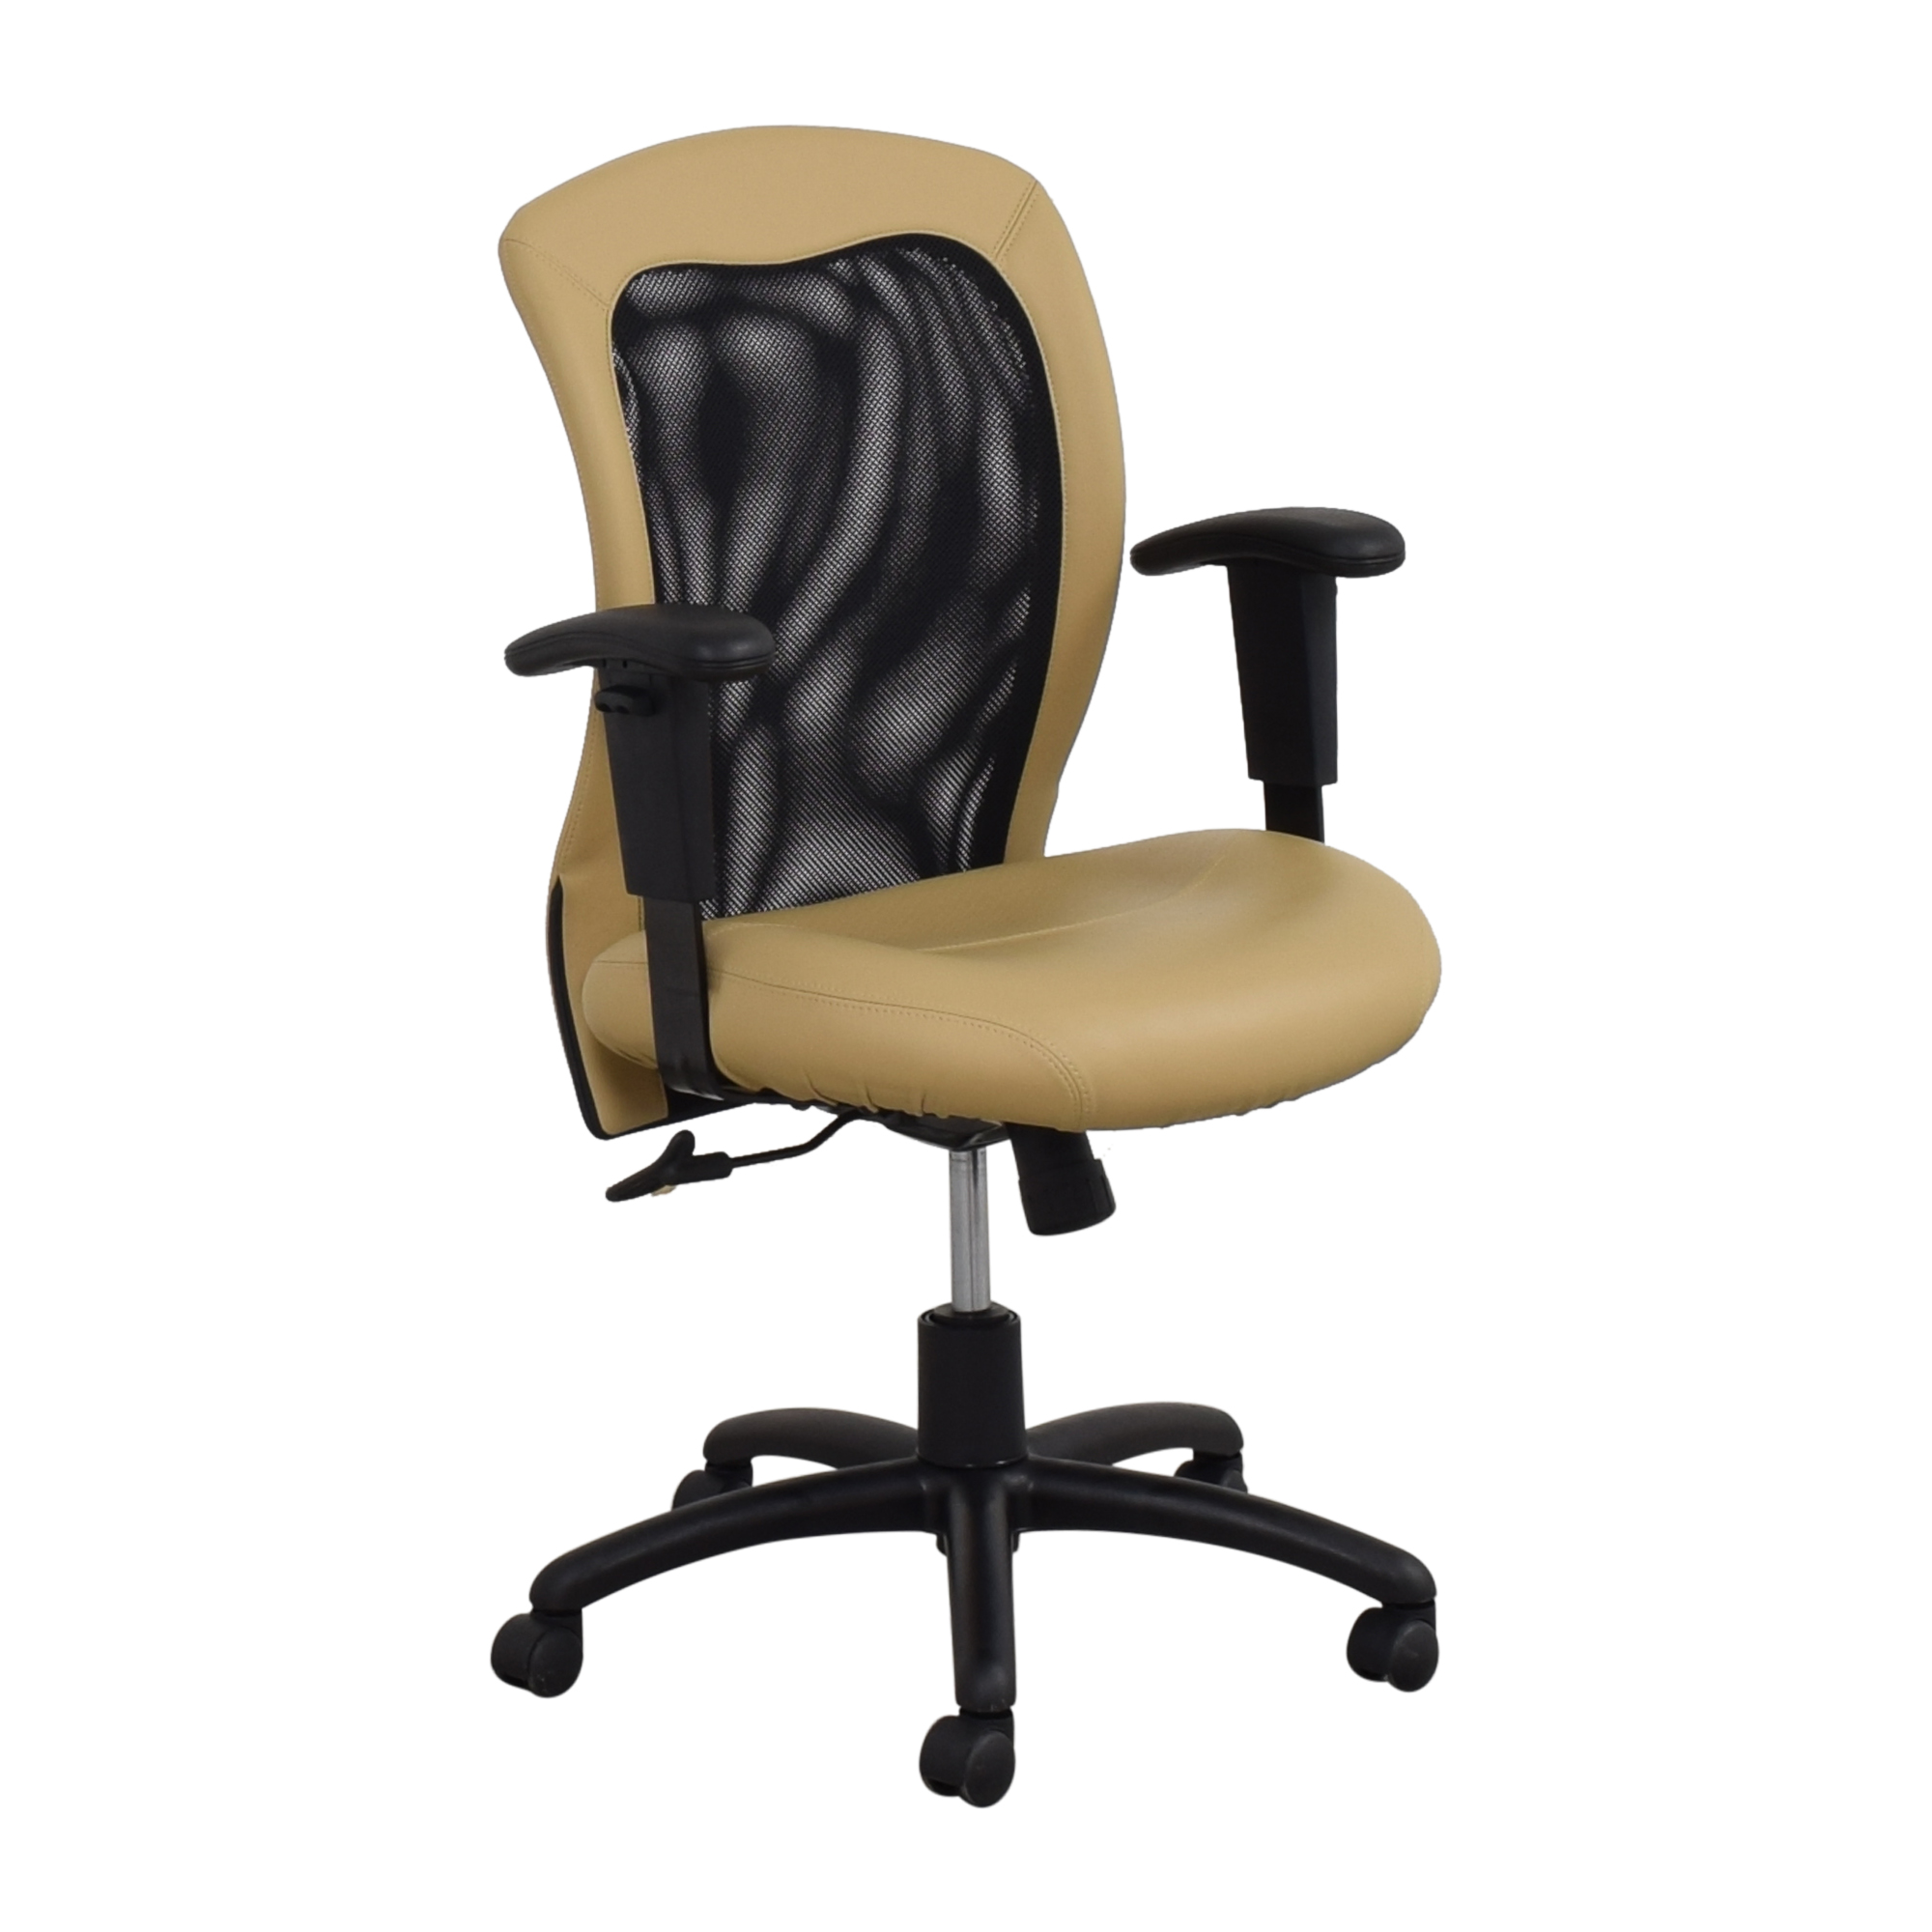 Offices to Go Offices to Go Mesh Back Tilter Office Chair ct